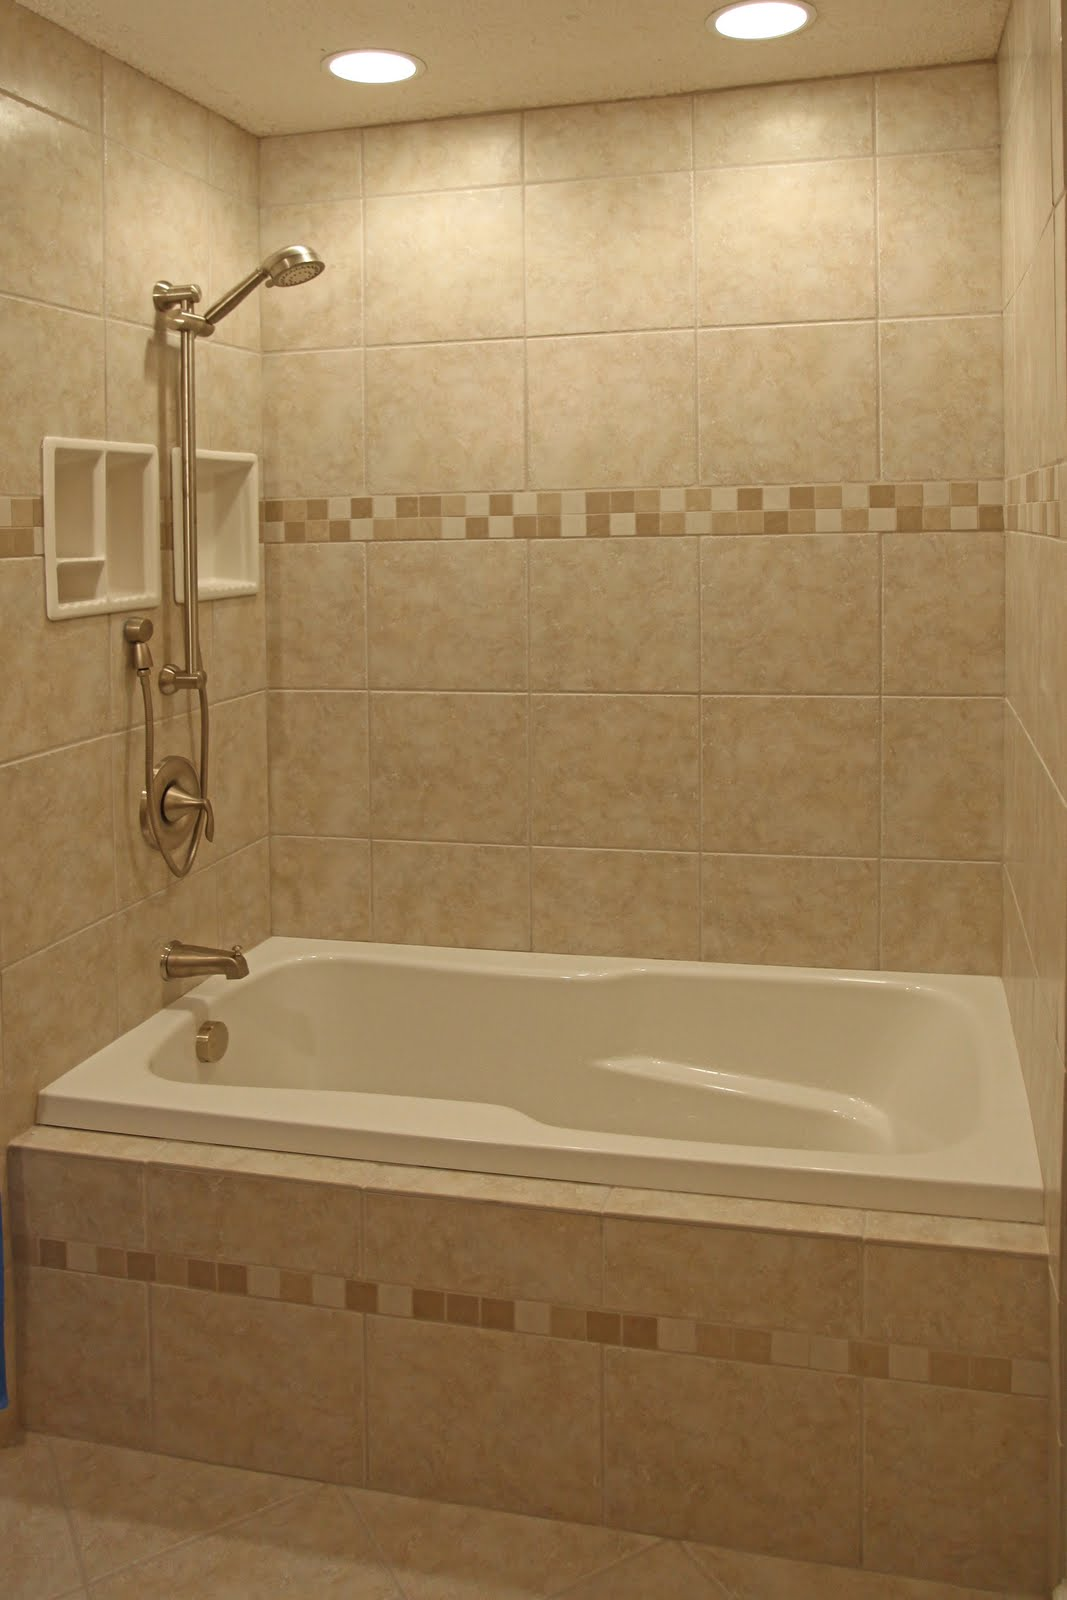 bathroom tiles designs pictures photo - 6